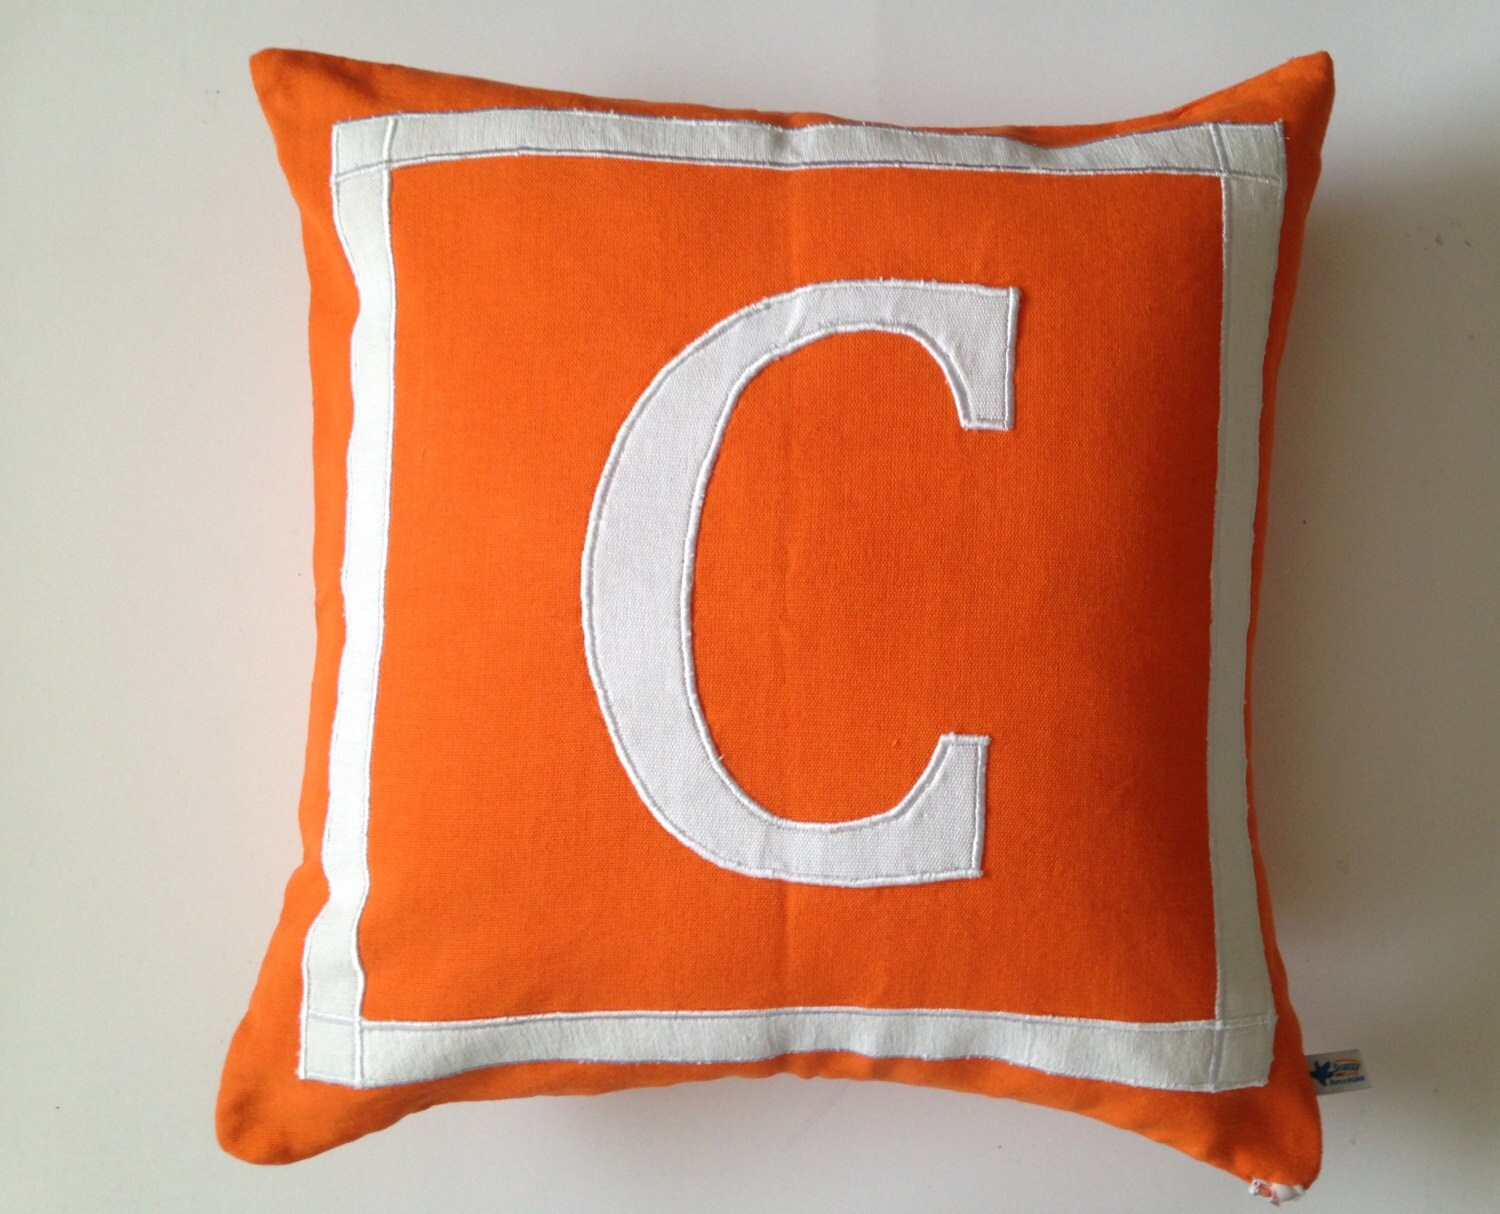 Gift for Women Orange White Decorative Pillow Covers Letter